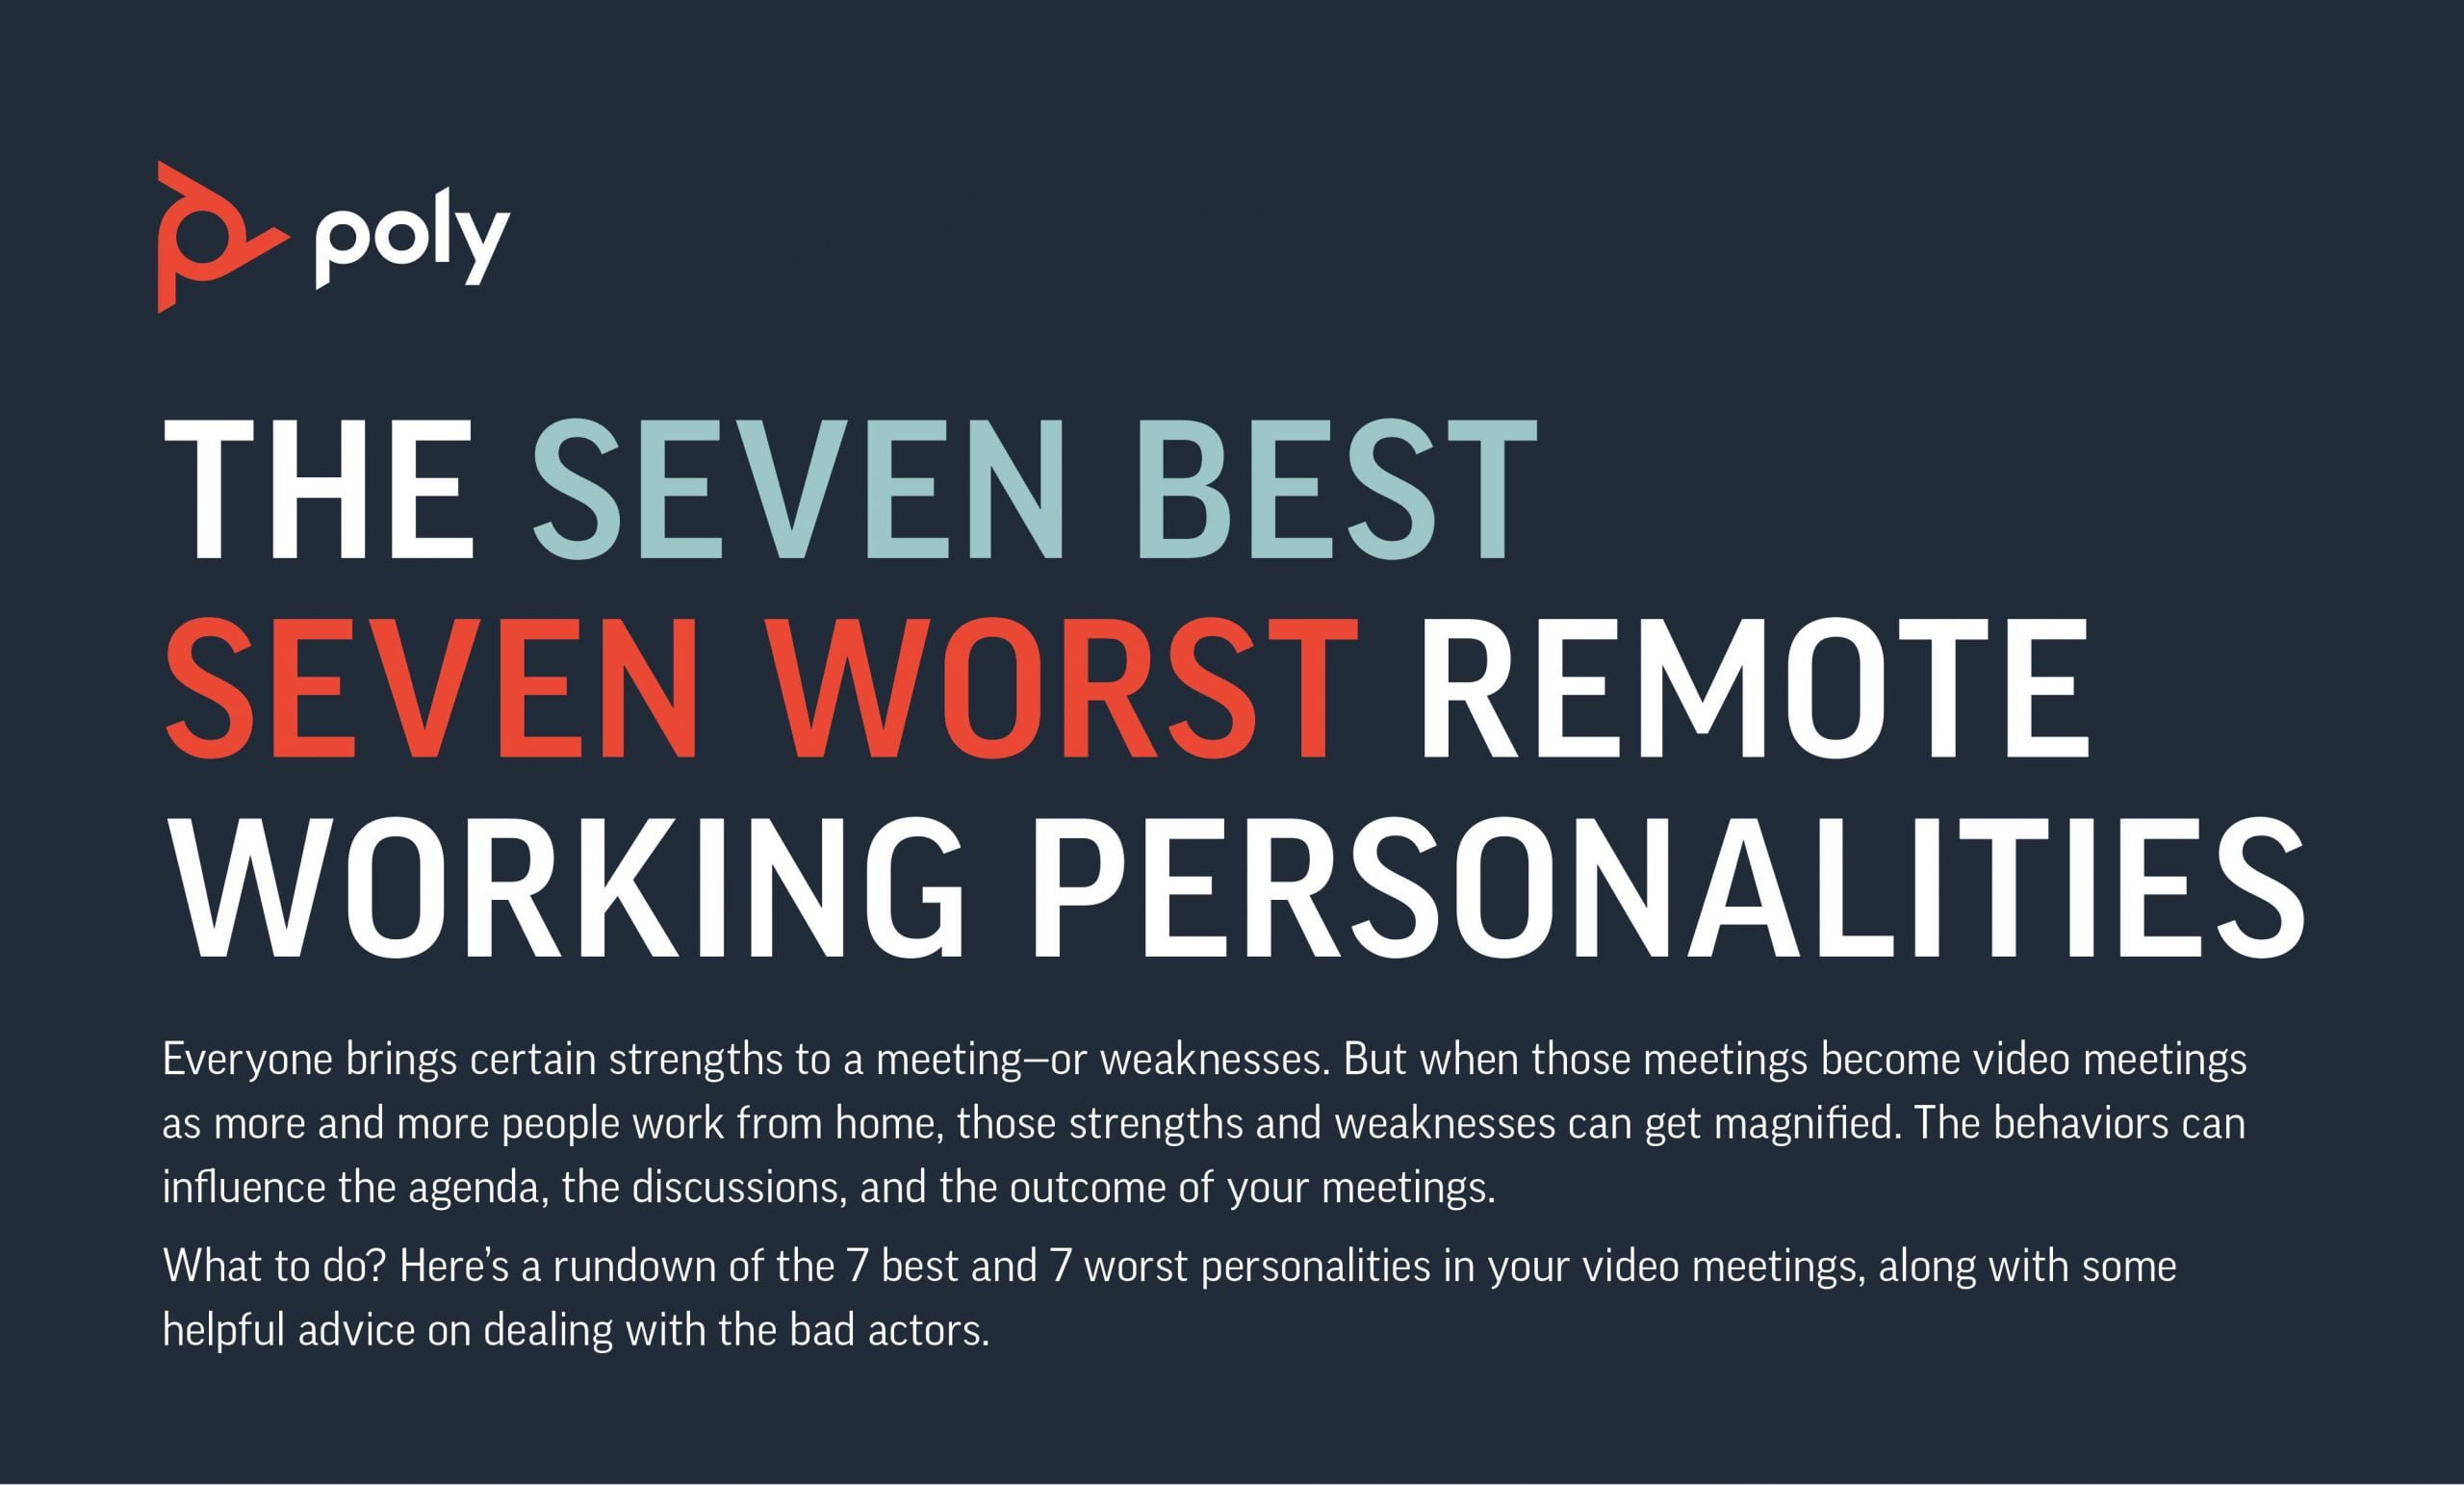 The 7 best and 7 worst remote working personalities